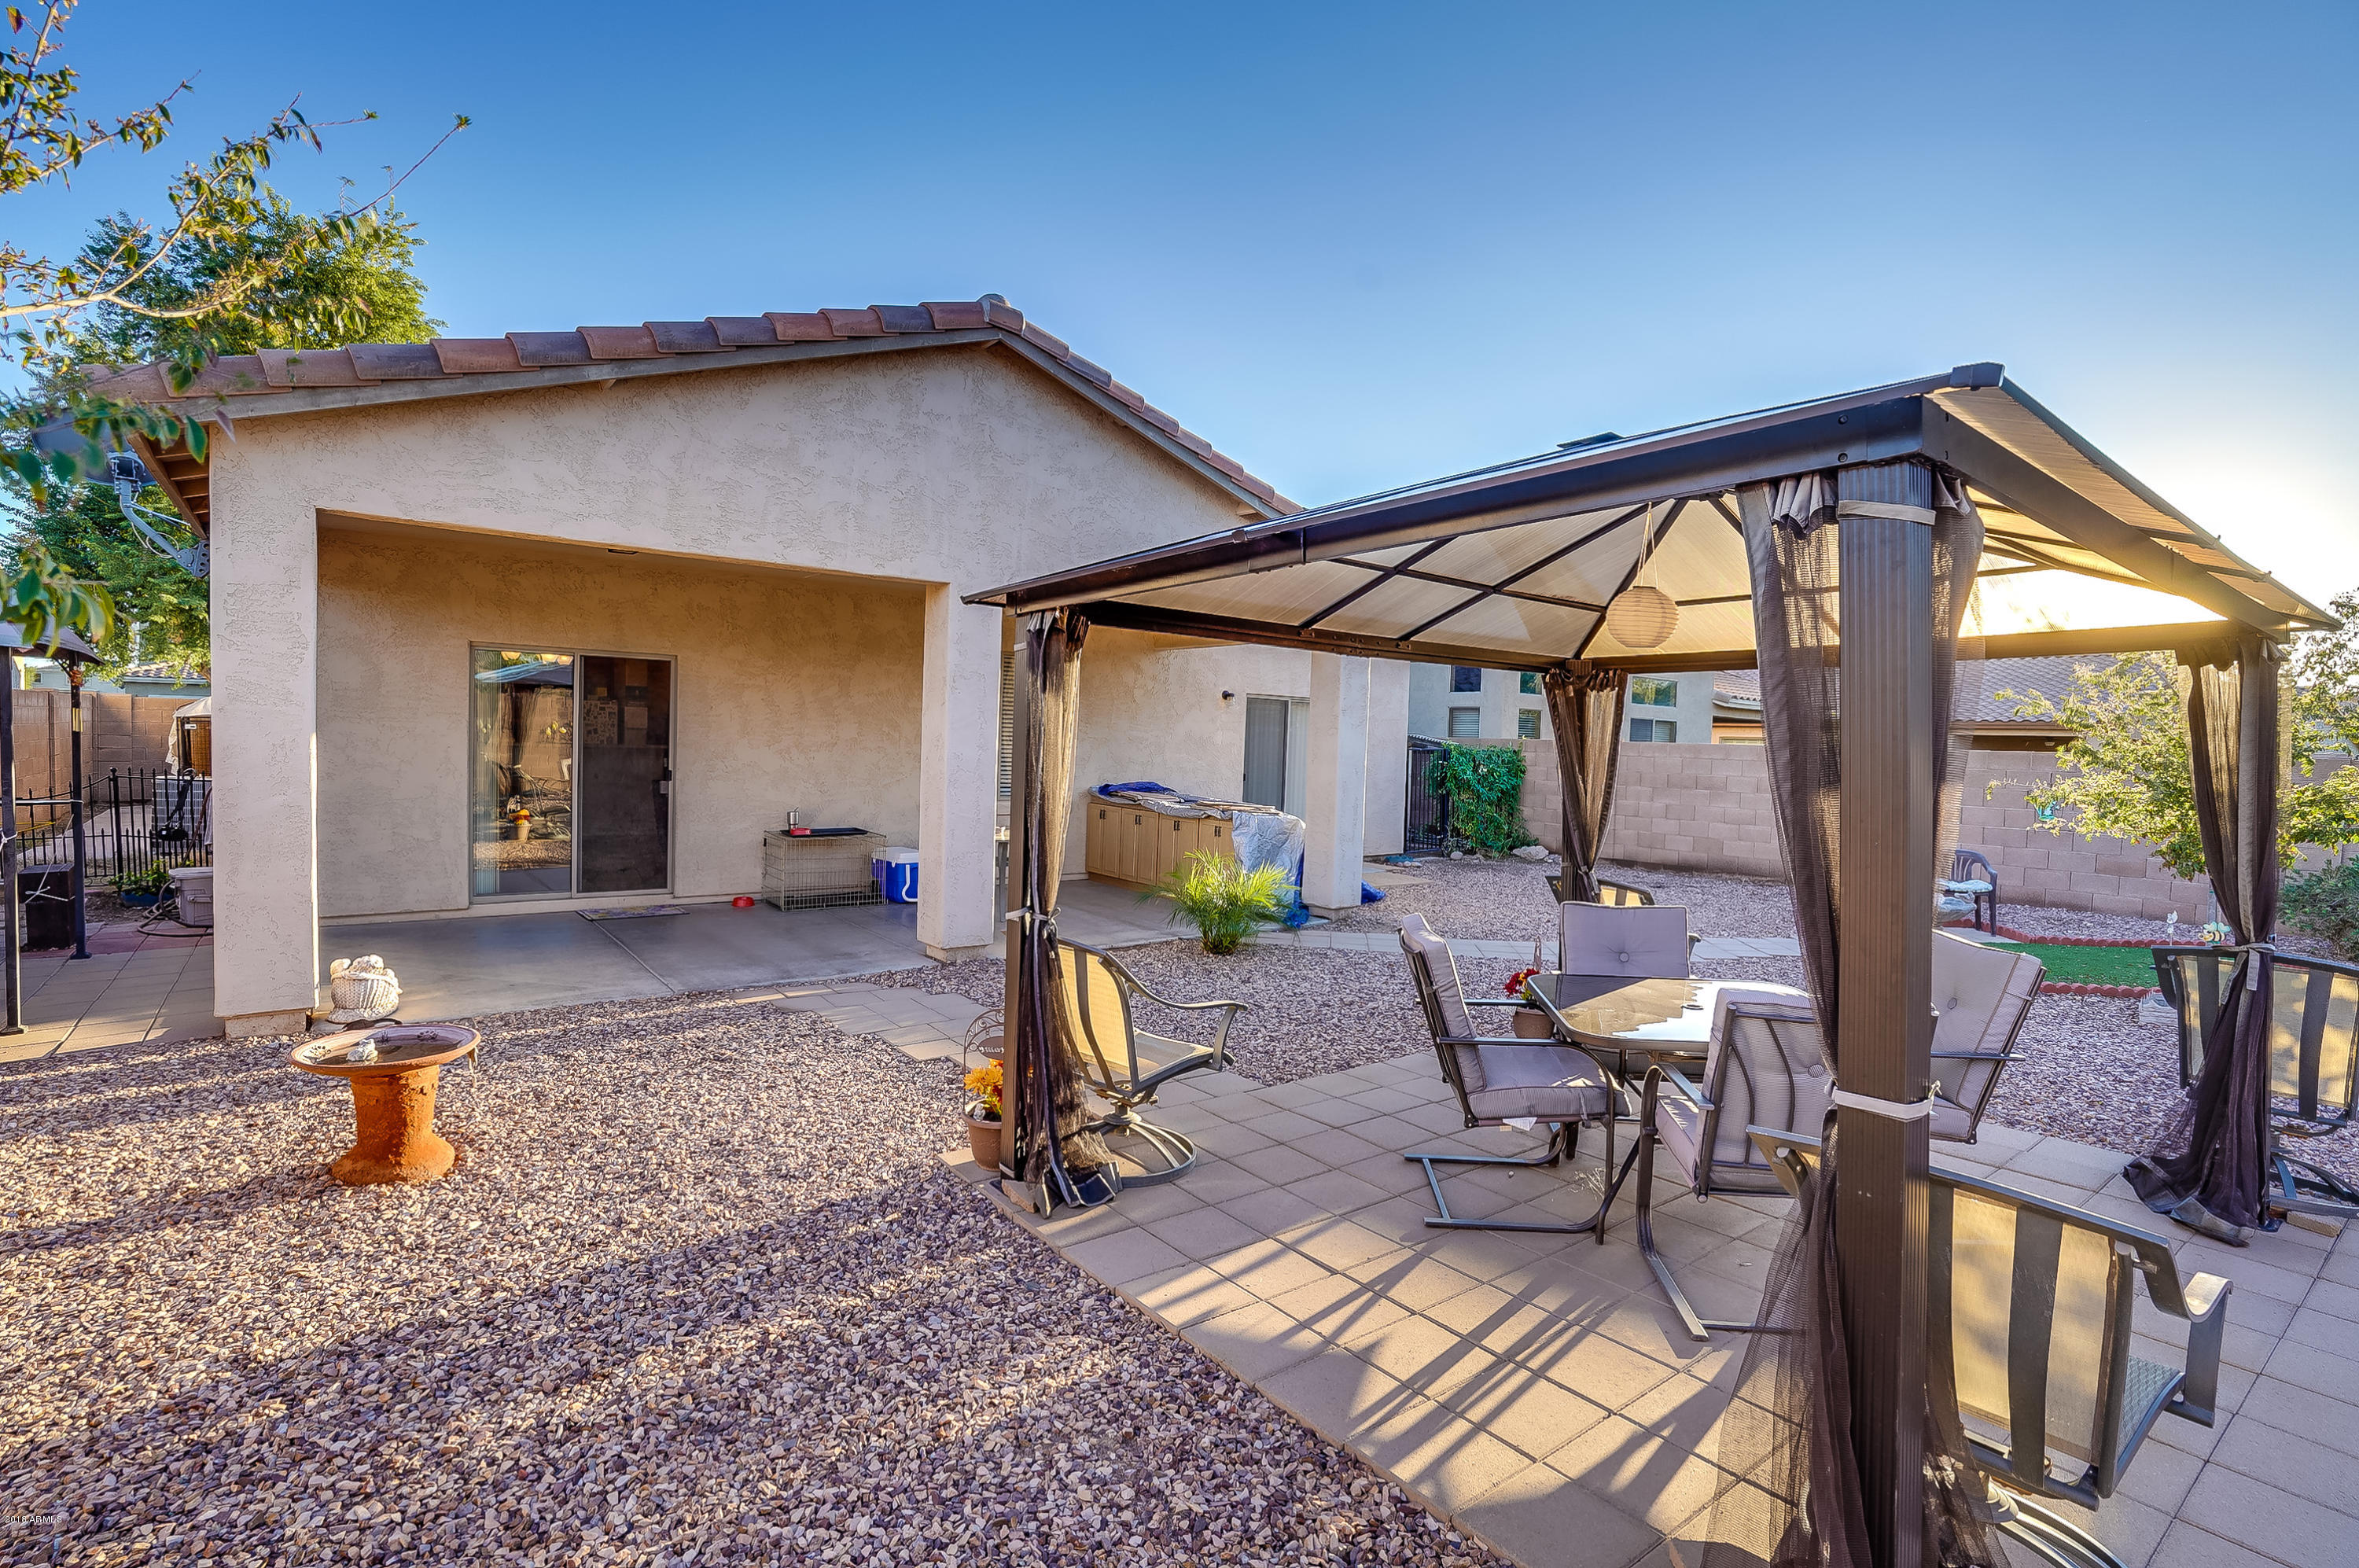 MLS 5834783 506 E HAROLD Drive, San Tan Valley, AZ 85140 San Tan Valley AZ Pecan Creek